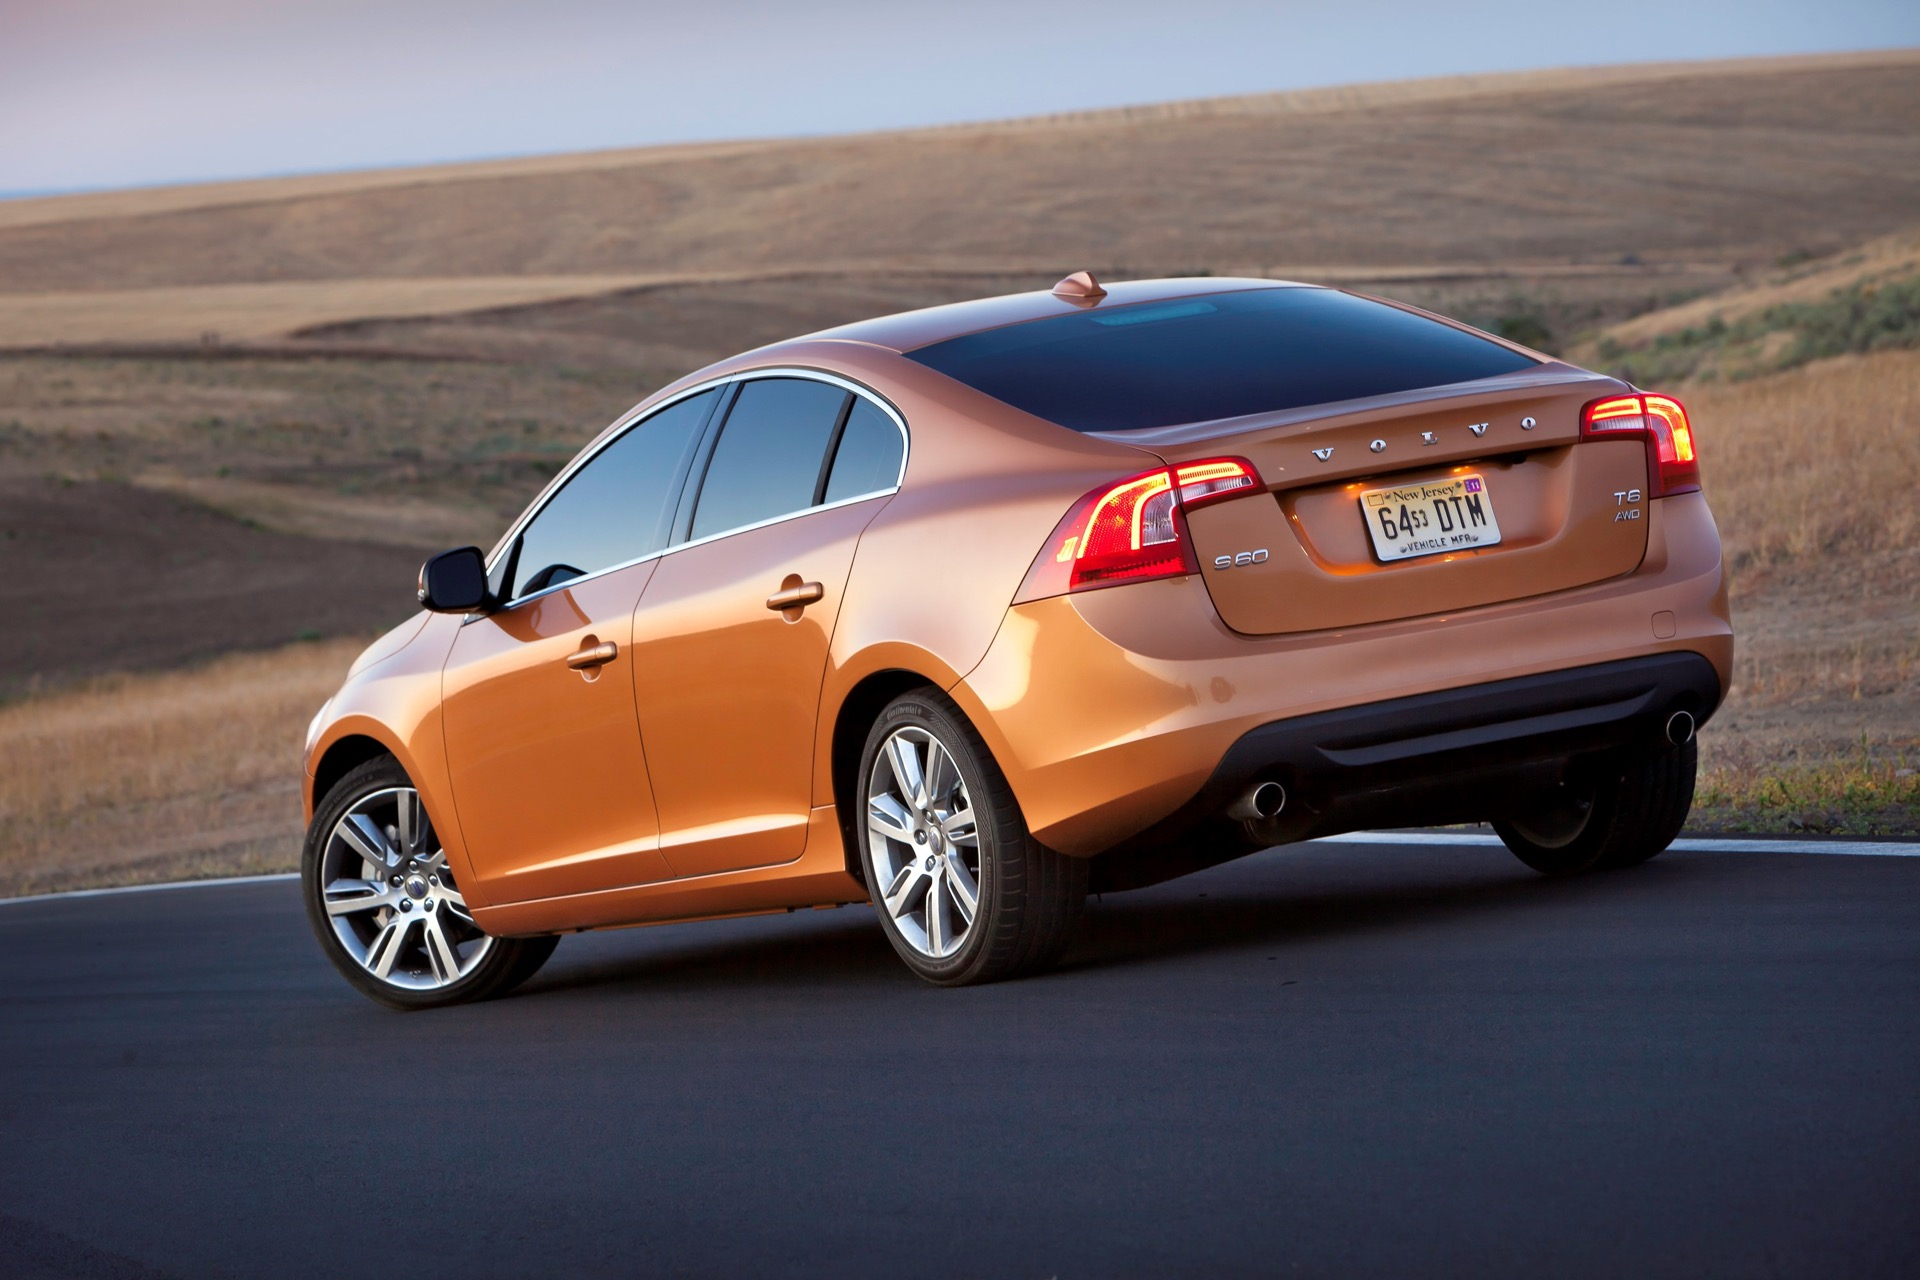 S60 T6 Awd Static Beauty06 -  Volvo